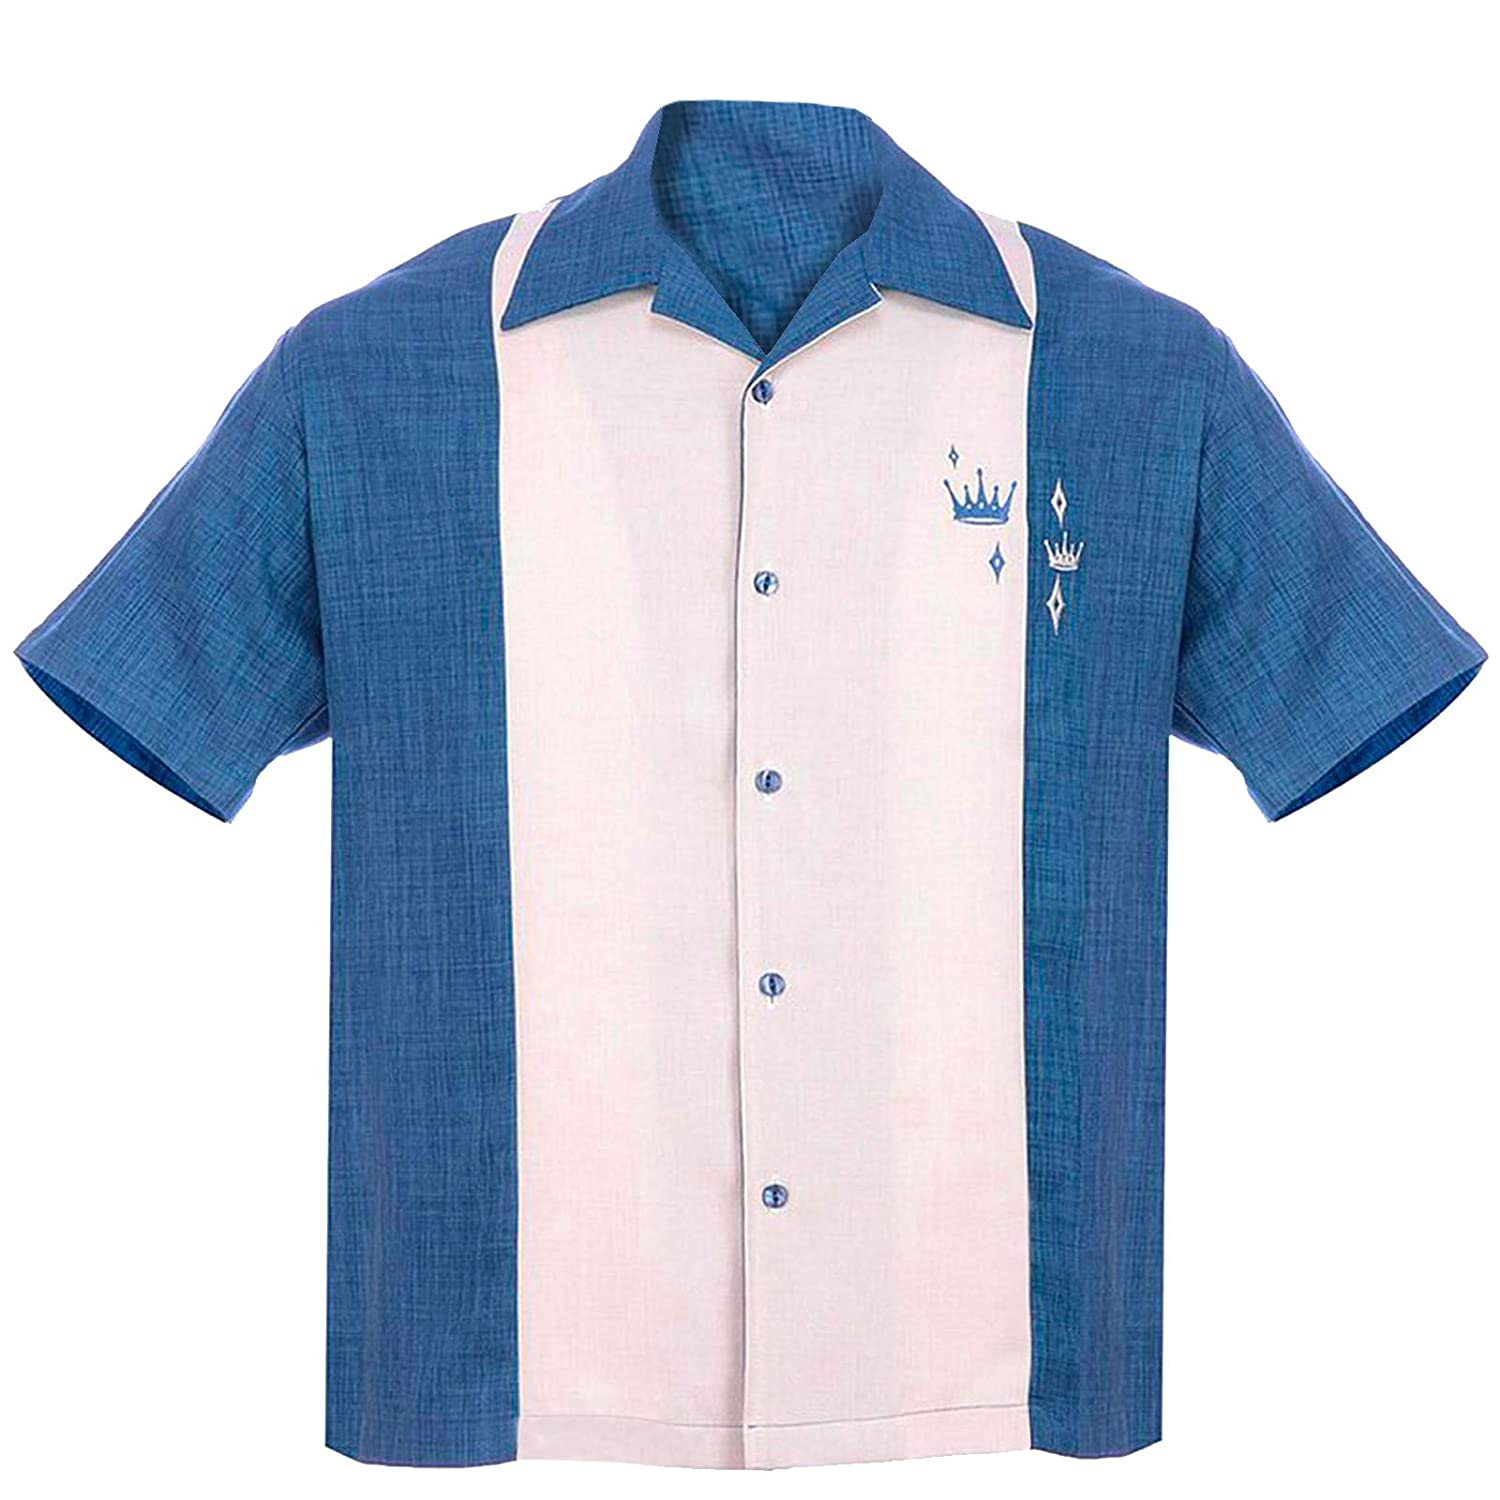 Mens Vintage Shirts – Retro Shirts Steady Clothing Mens Contrast Crown Button Up Bowling Shirt Blue $59.99 AT vintagedancer.com